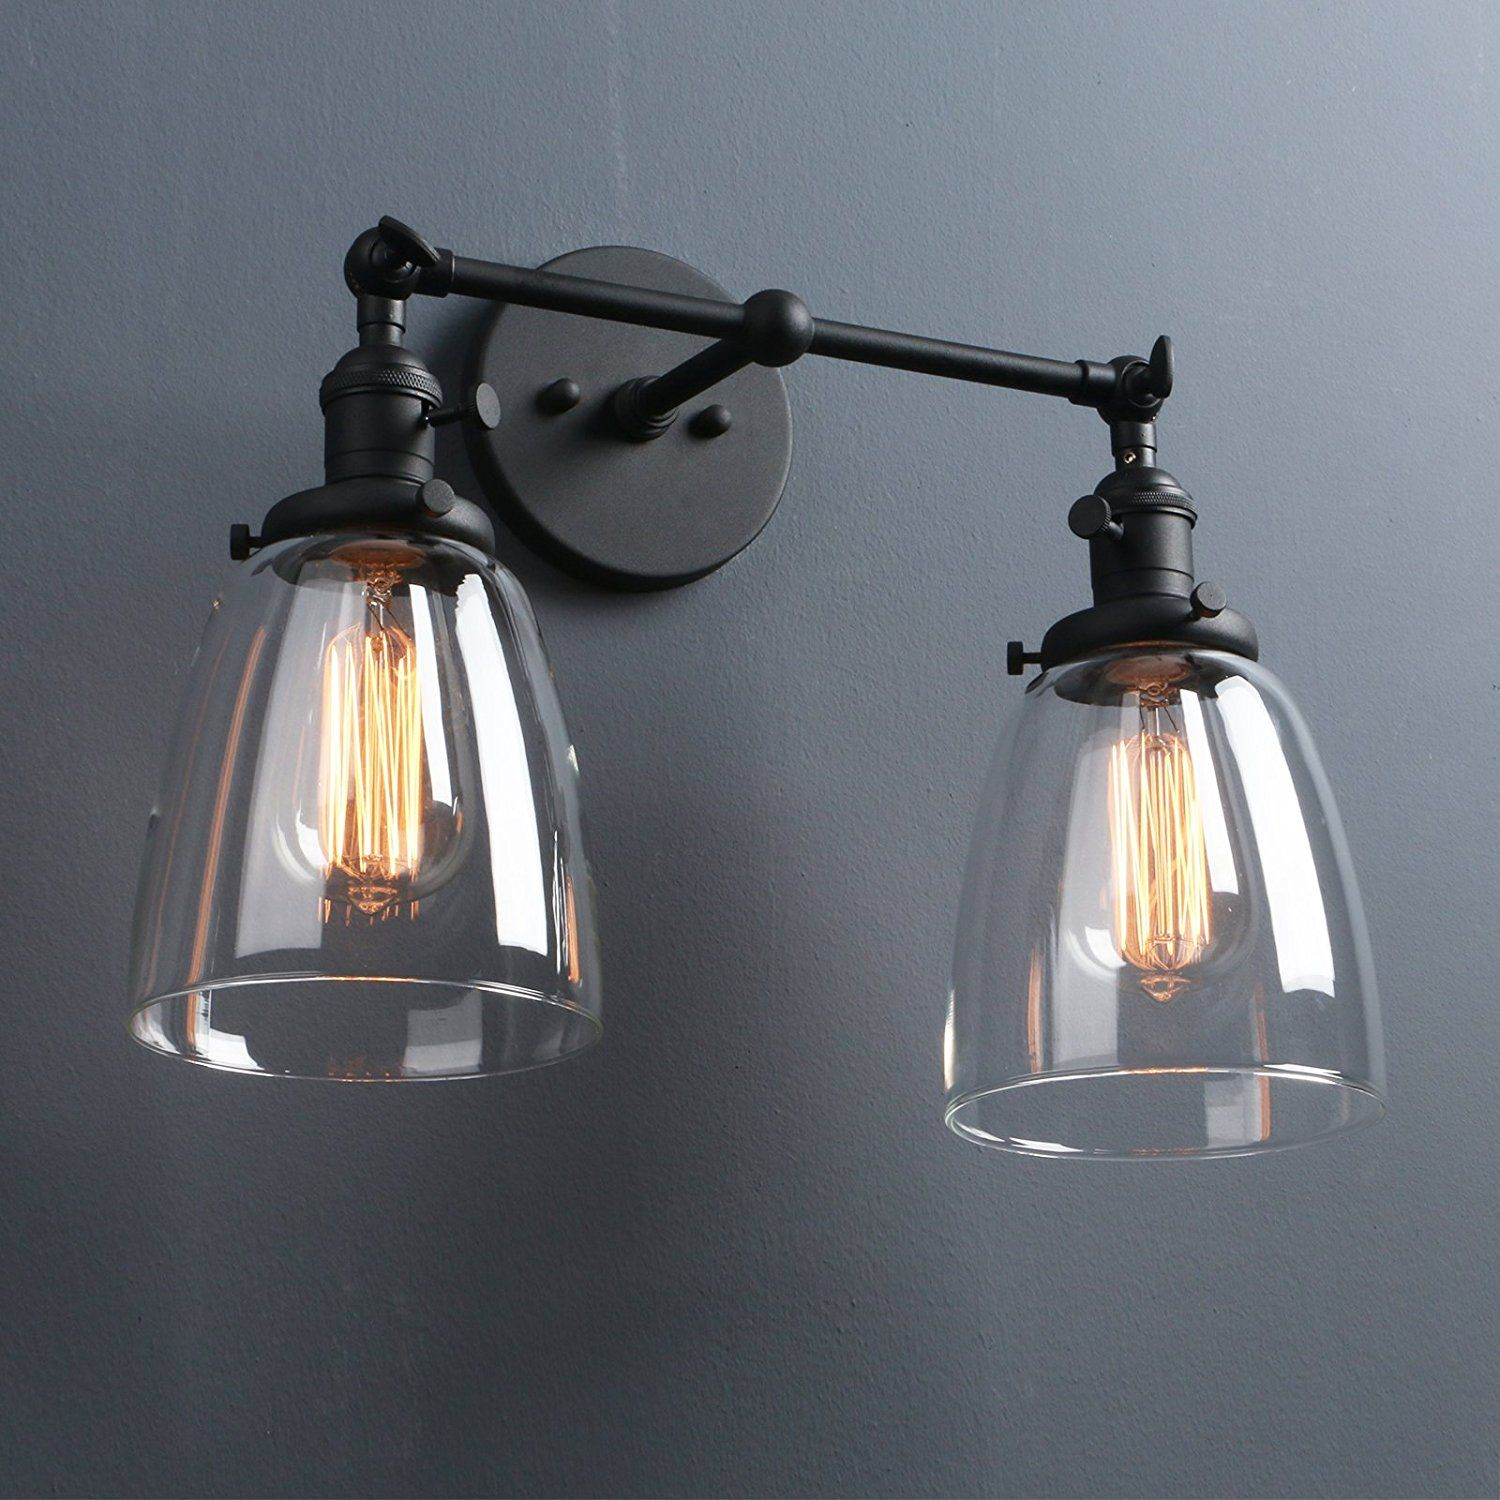 Phansthy Industrial Wall Sconce Fixture Vintage Style Clear Glass